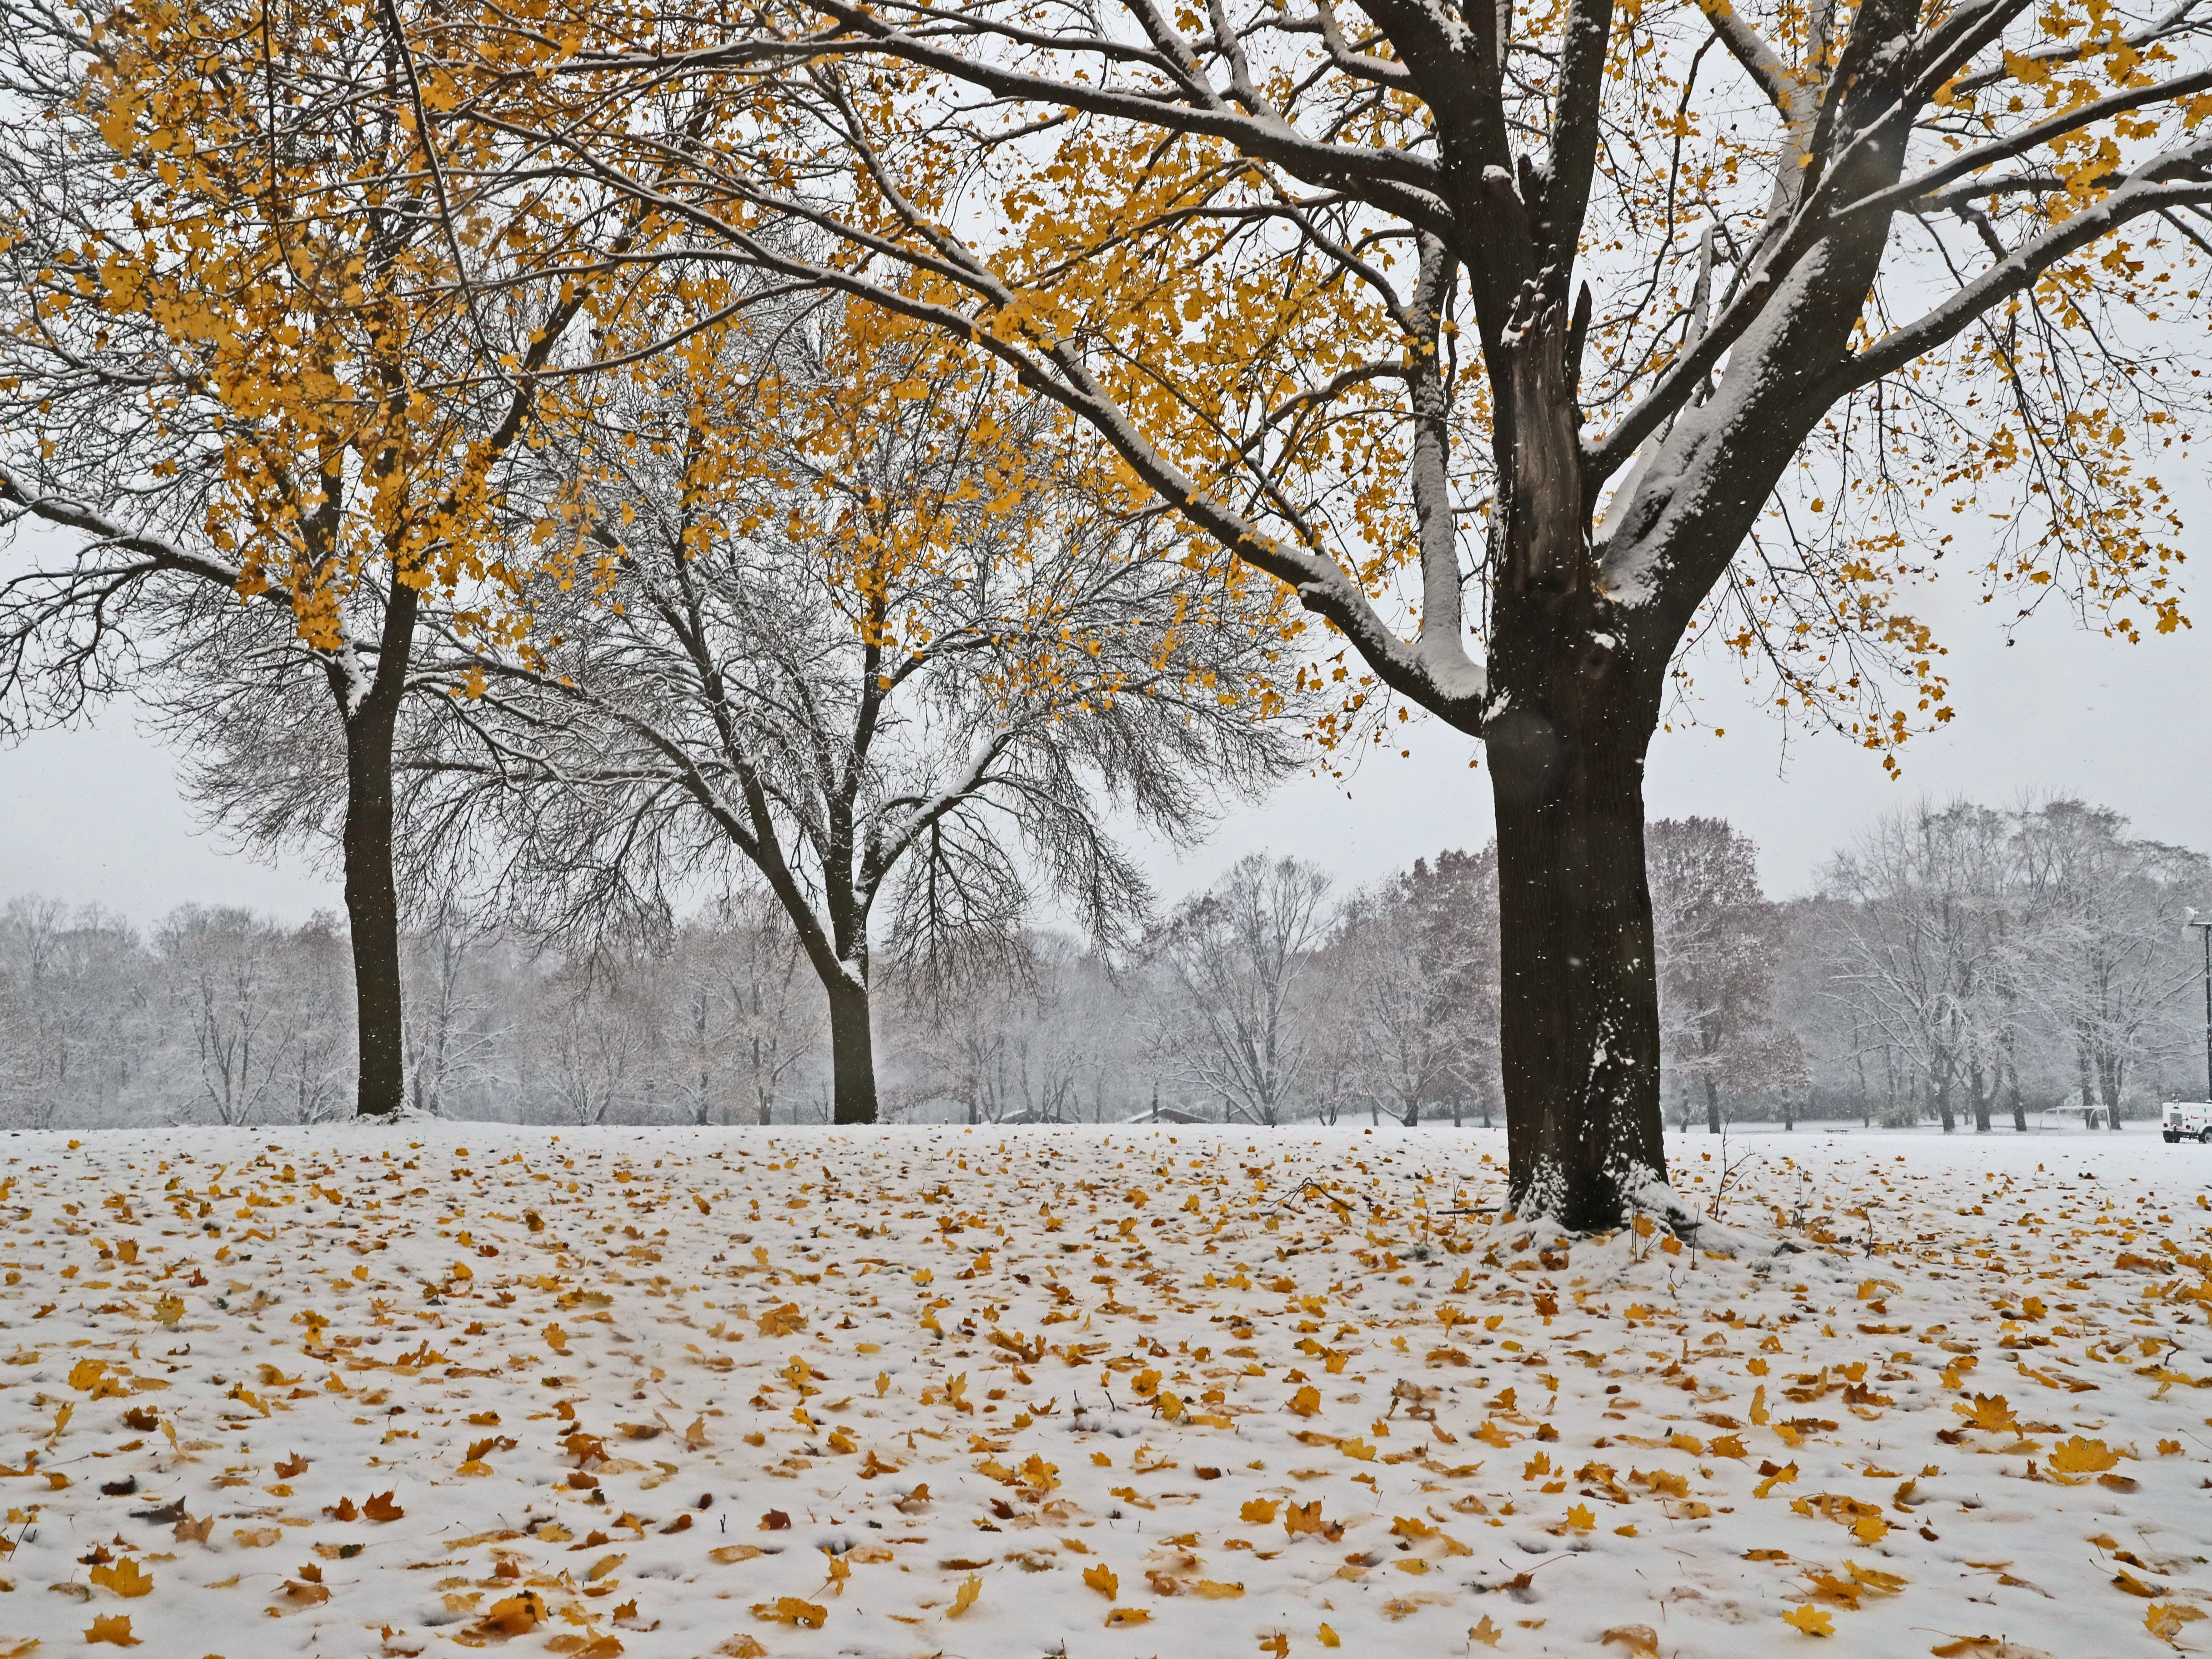 The last leaves fall from  trees as snow weighed them down in Naga-Waukee Park in Delafield.